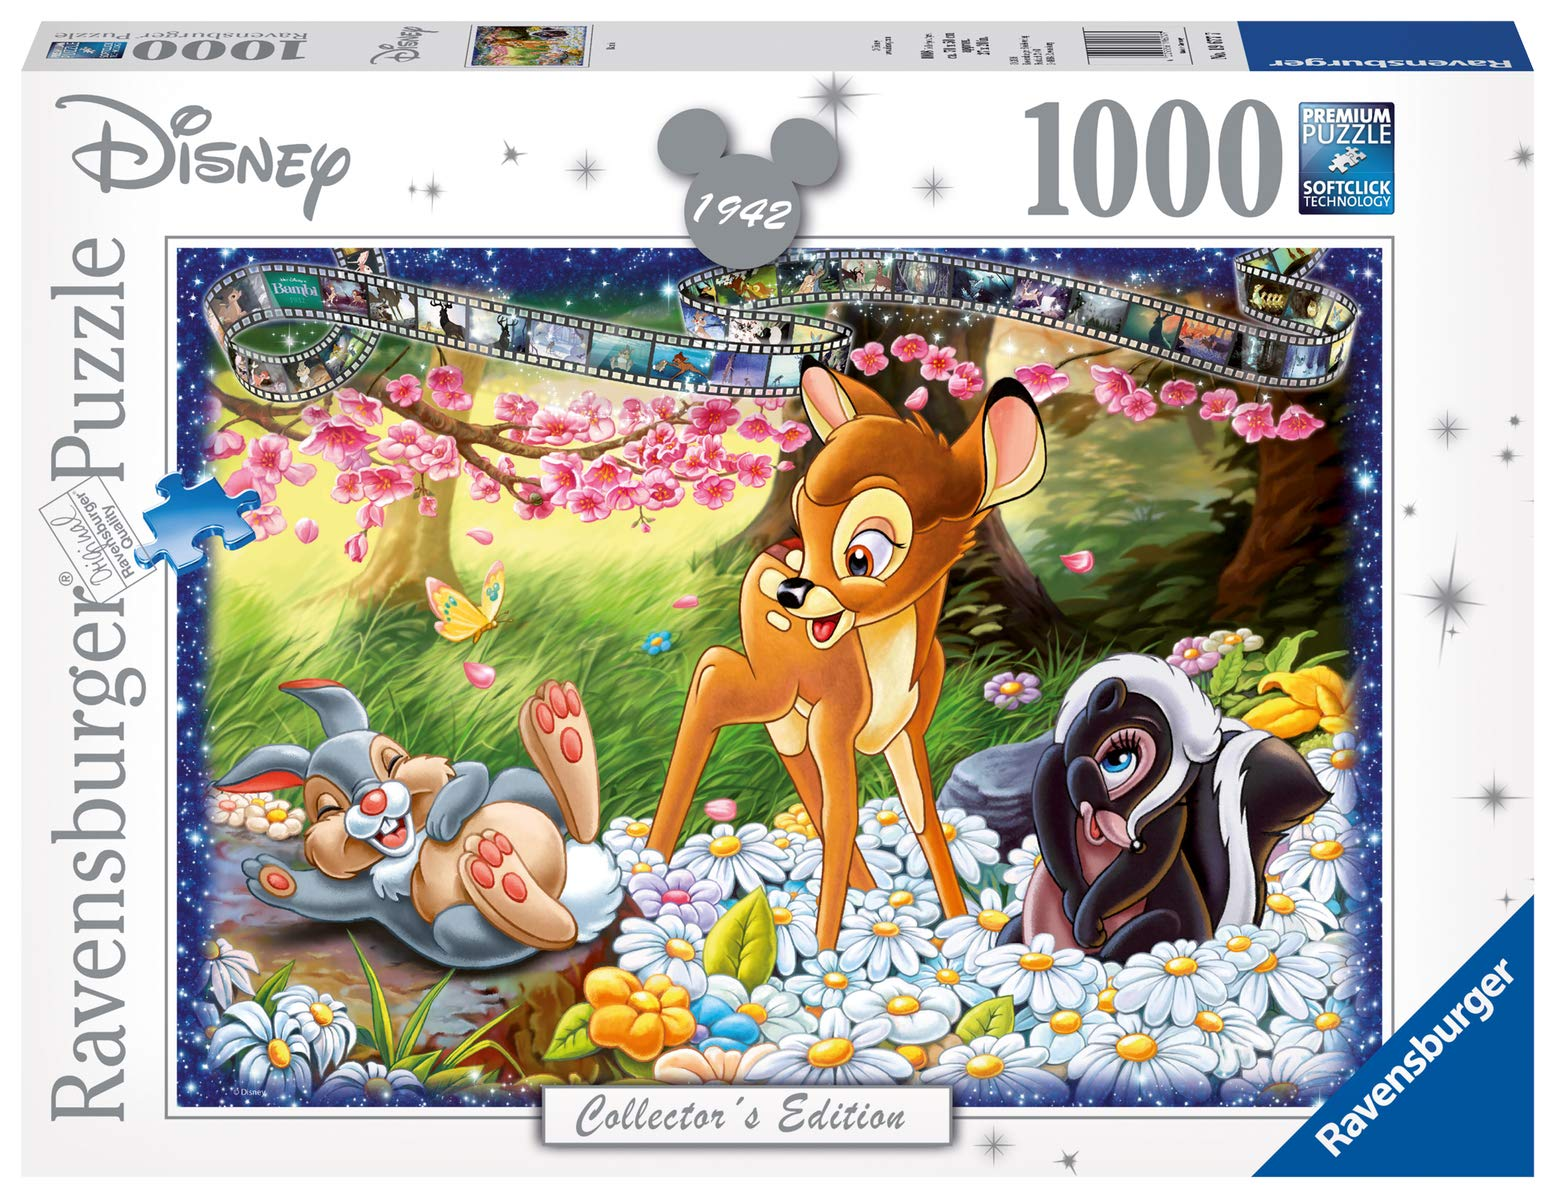 Ravensburger 19677 Disney Collector's Edition Bambi 1000 Jigsaw Puzzle for Adults-Every Unique, Softclick Technology Means Pieces Fit Together Perfectly